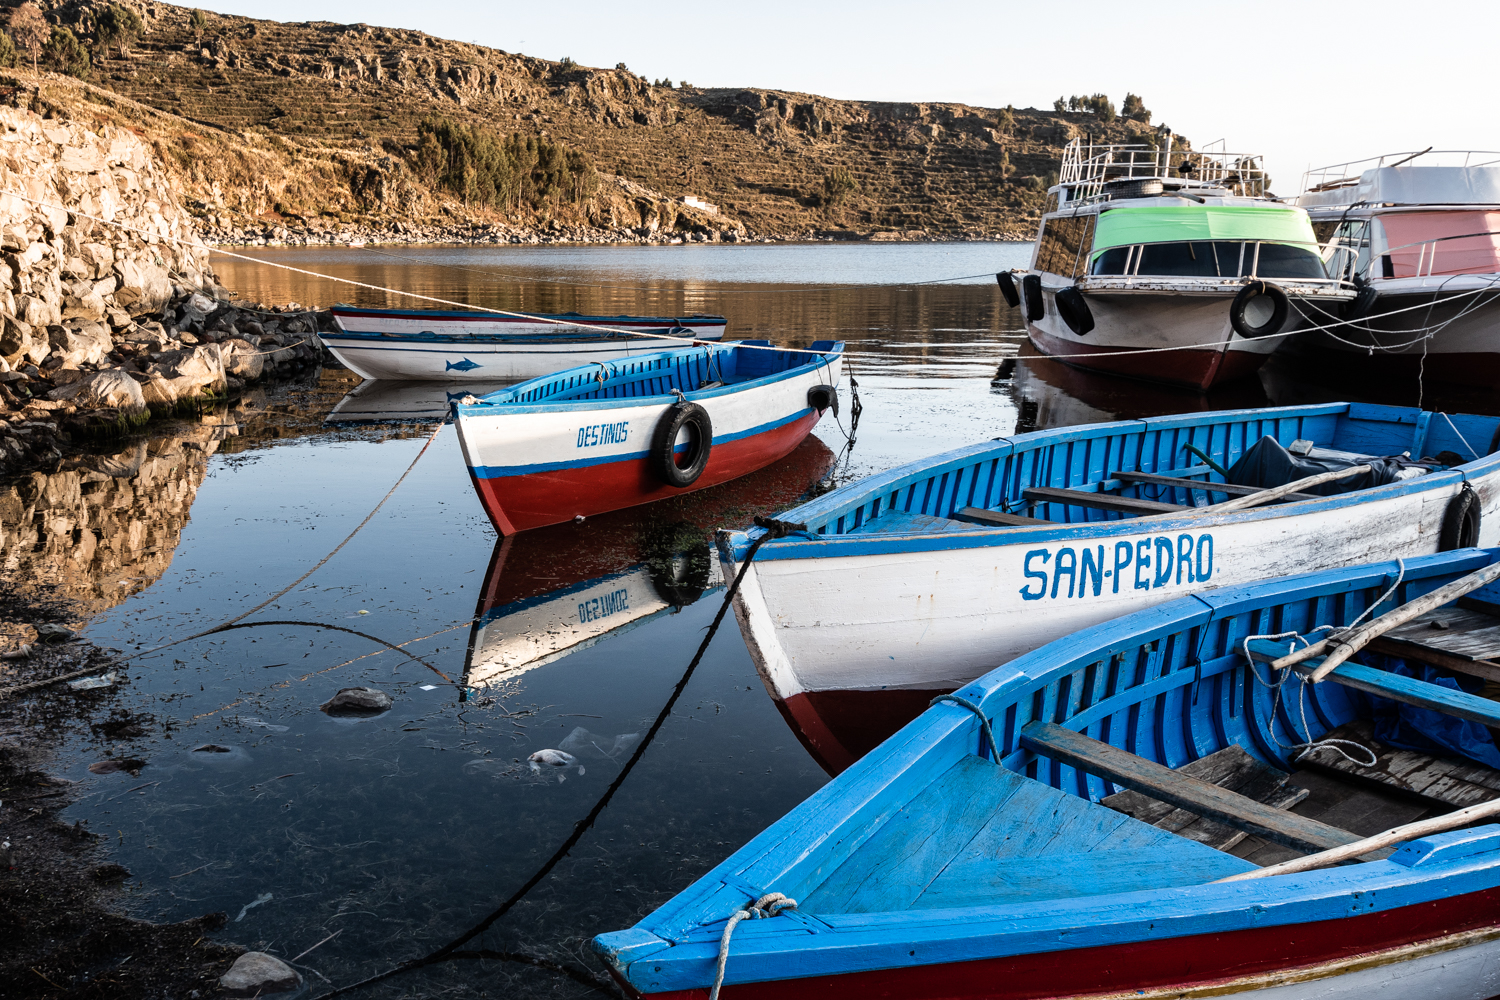 Boats await more prosperous times to sail, at the moment there is not much fish to catch.